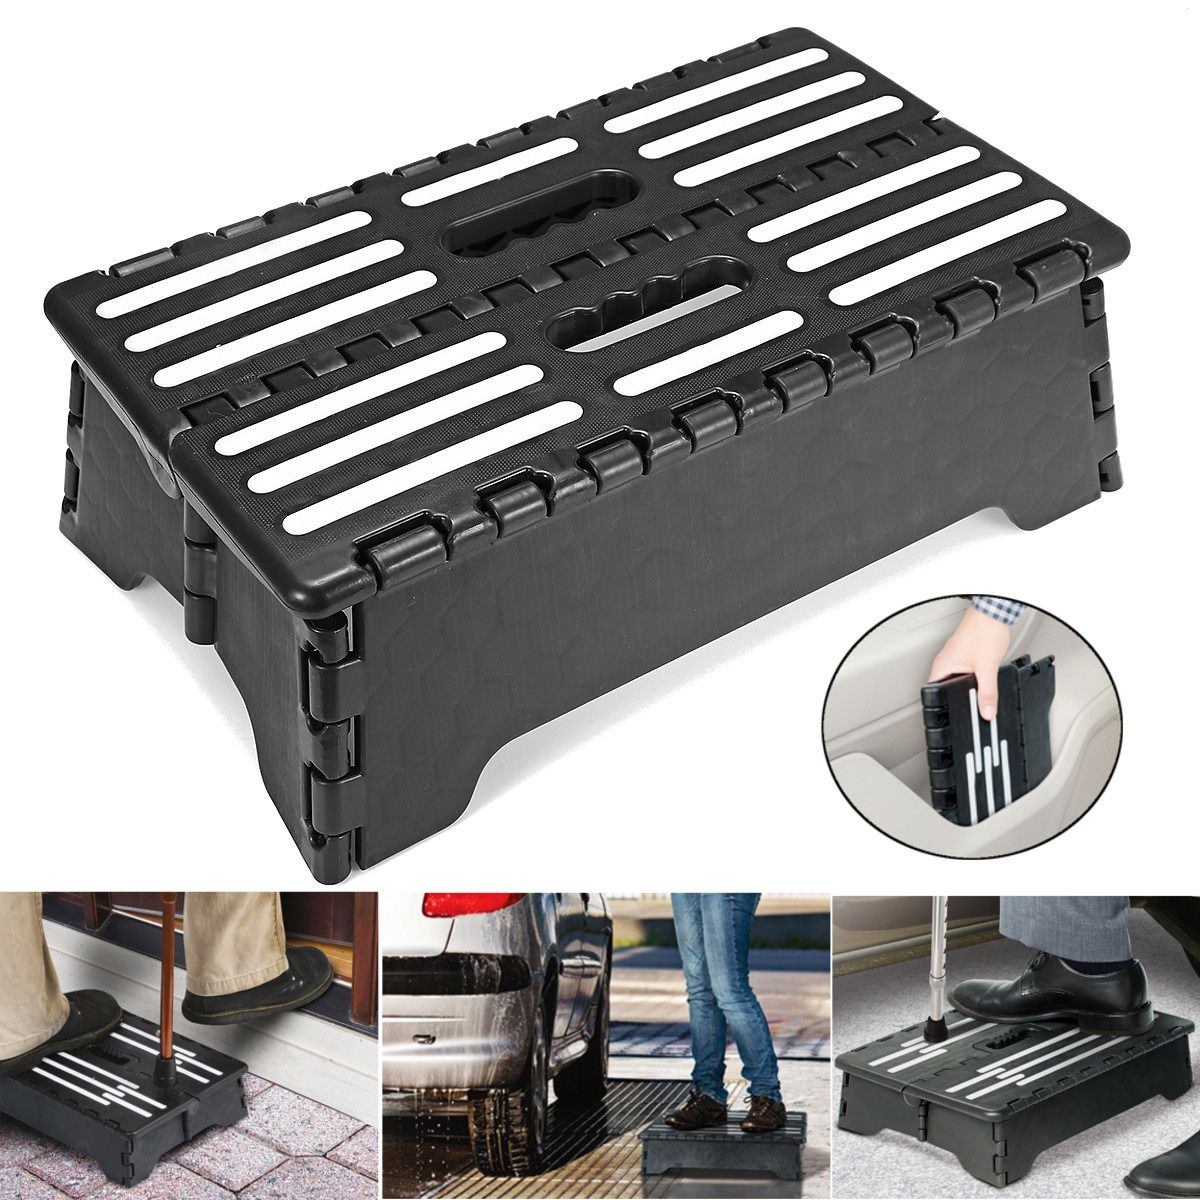 Portable Folding Step Stool Ladder Elderly Pregnant Foot Stool Bathroom Travel Toilet Elderly Constipation Assistant Bench Tools